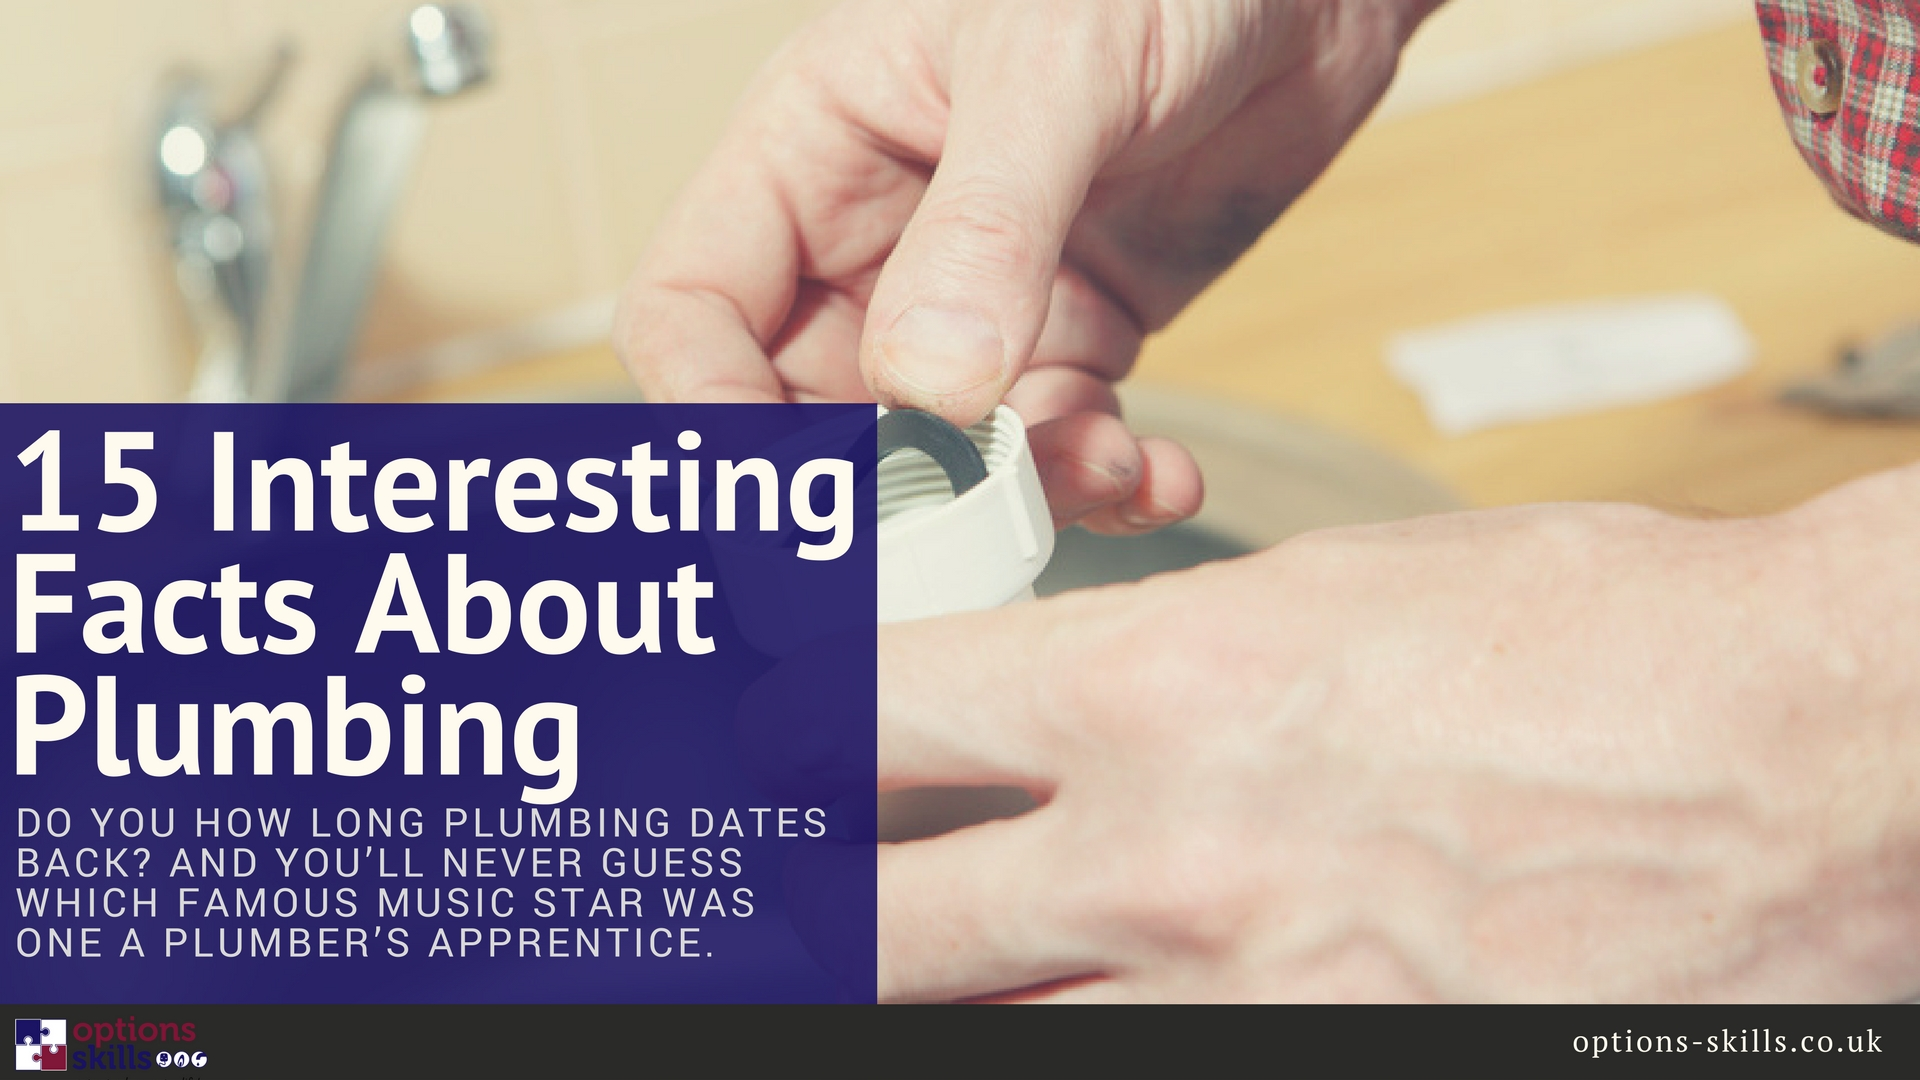 Facts about plumbing